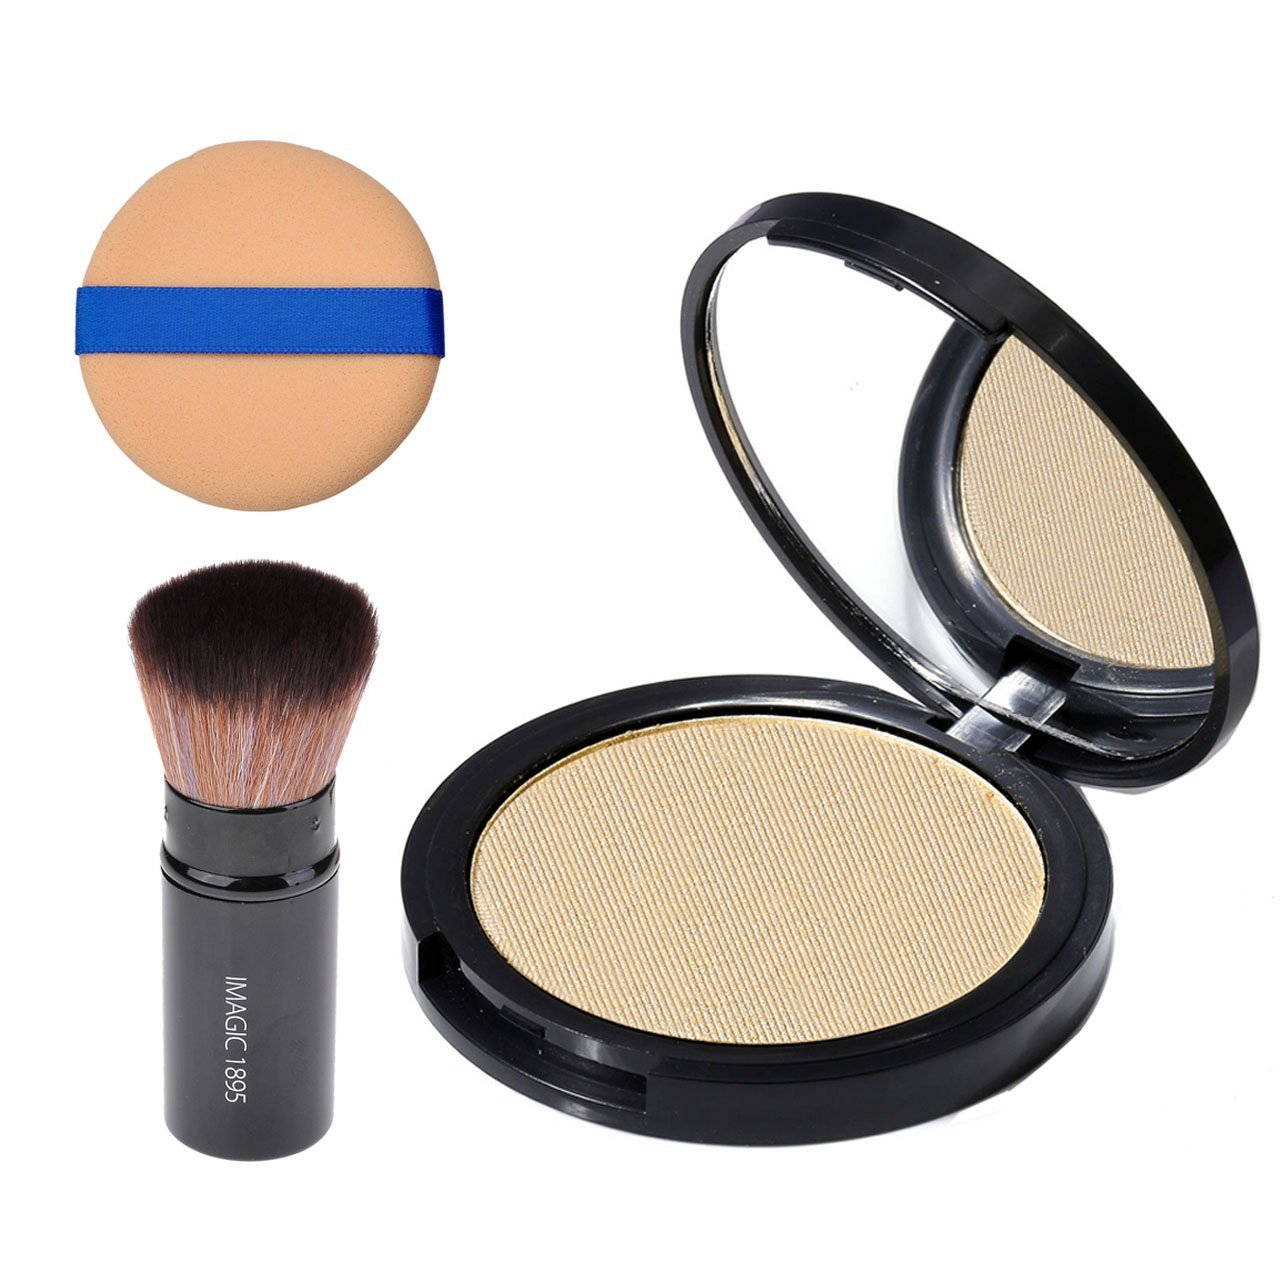 Get Quotations · CCbeauty Illuminator Highlight Compact Powder Makeup Palette + Retractable Foundation Powder Makeup Blush Highlighter Brush and